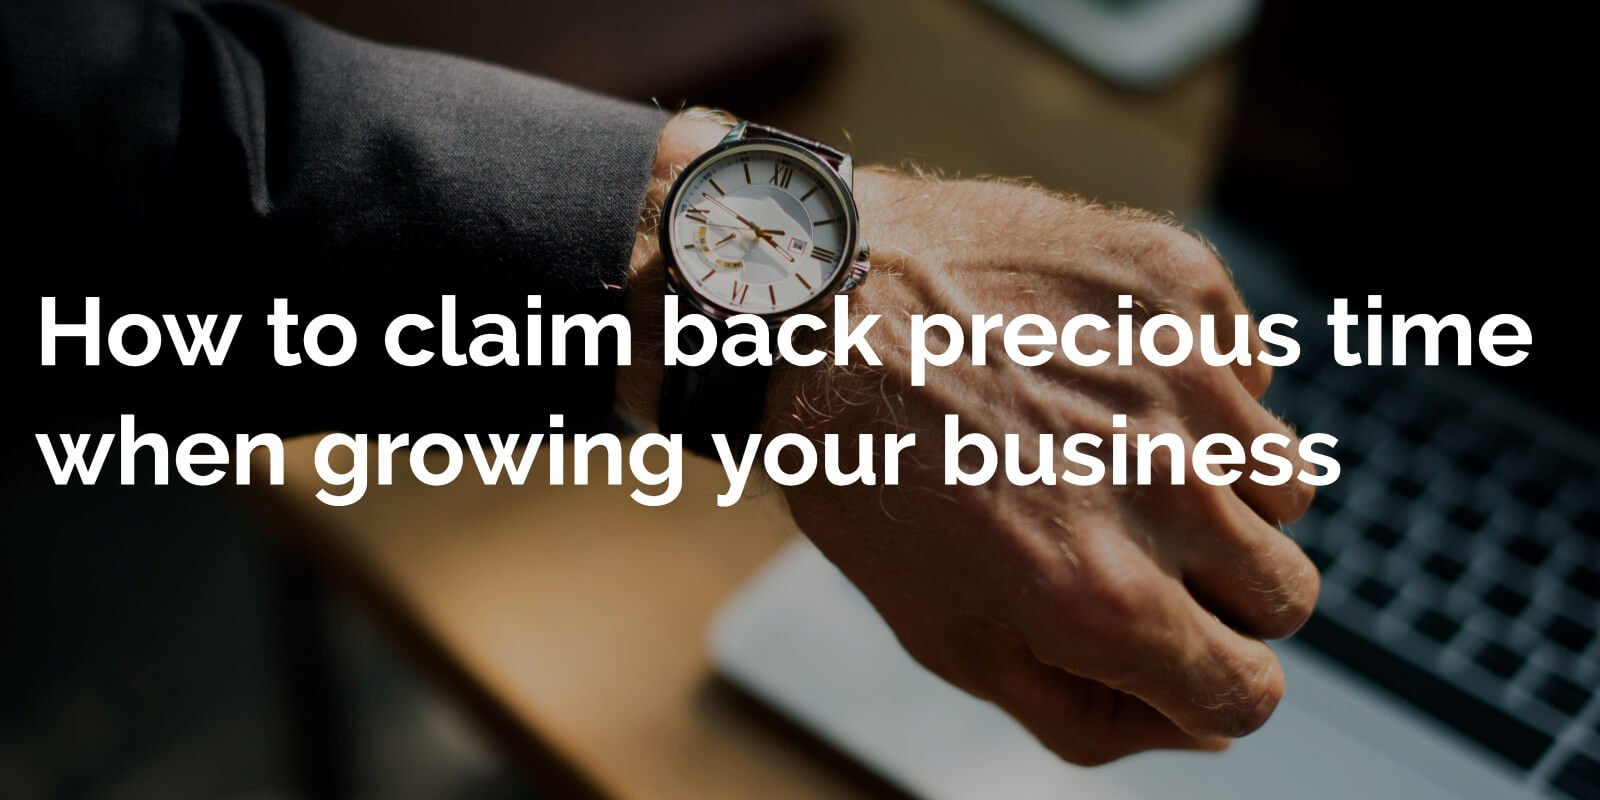 How to claim back precious time when growing your business